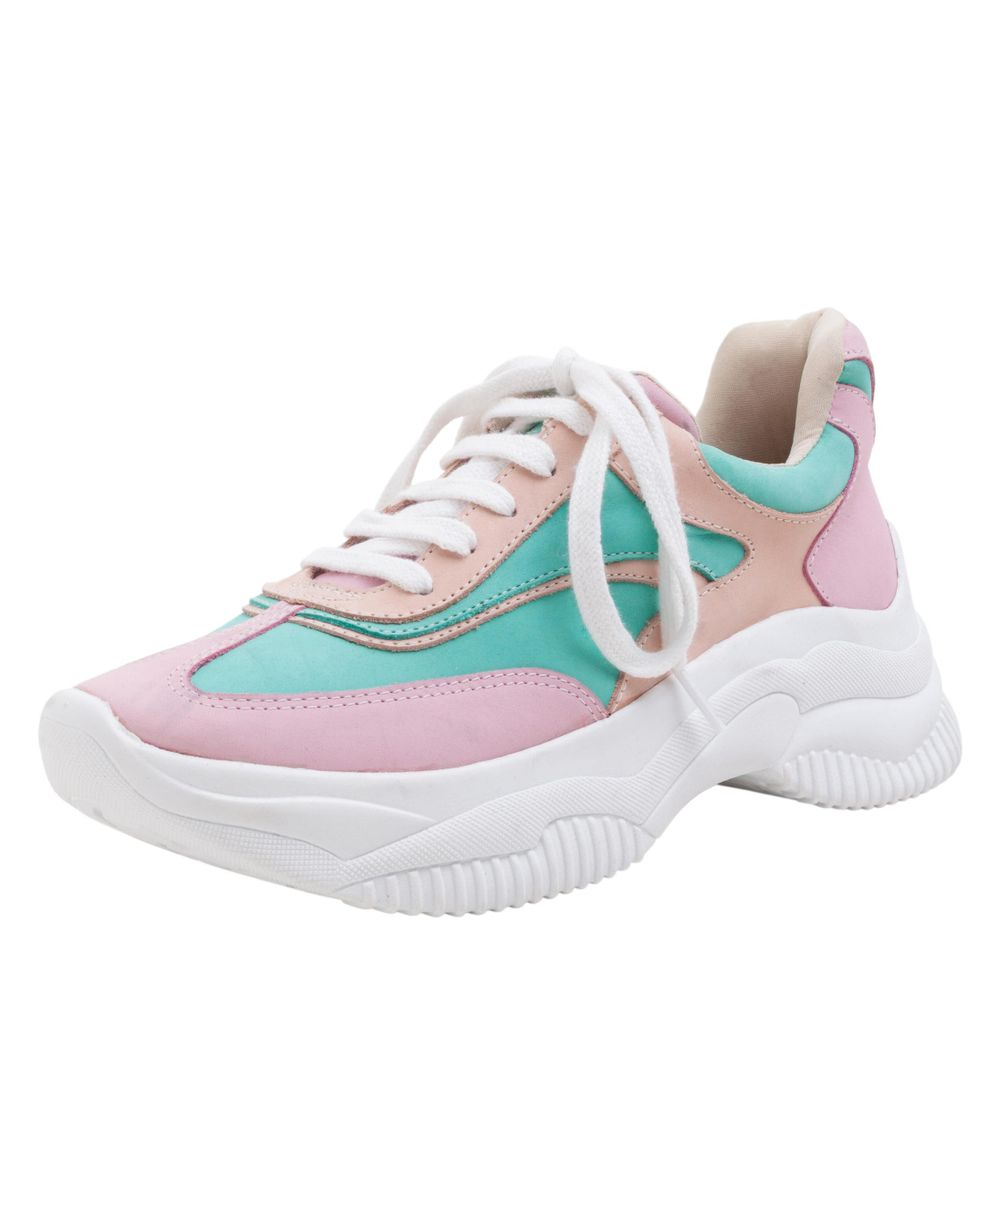 70460081_423_1-TENIS-CHUNKY-CANDY